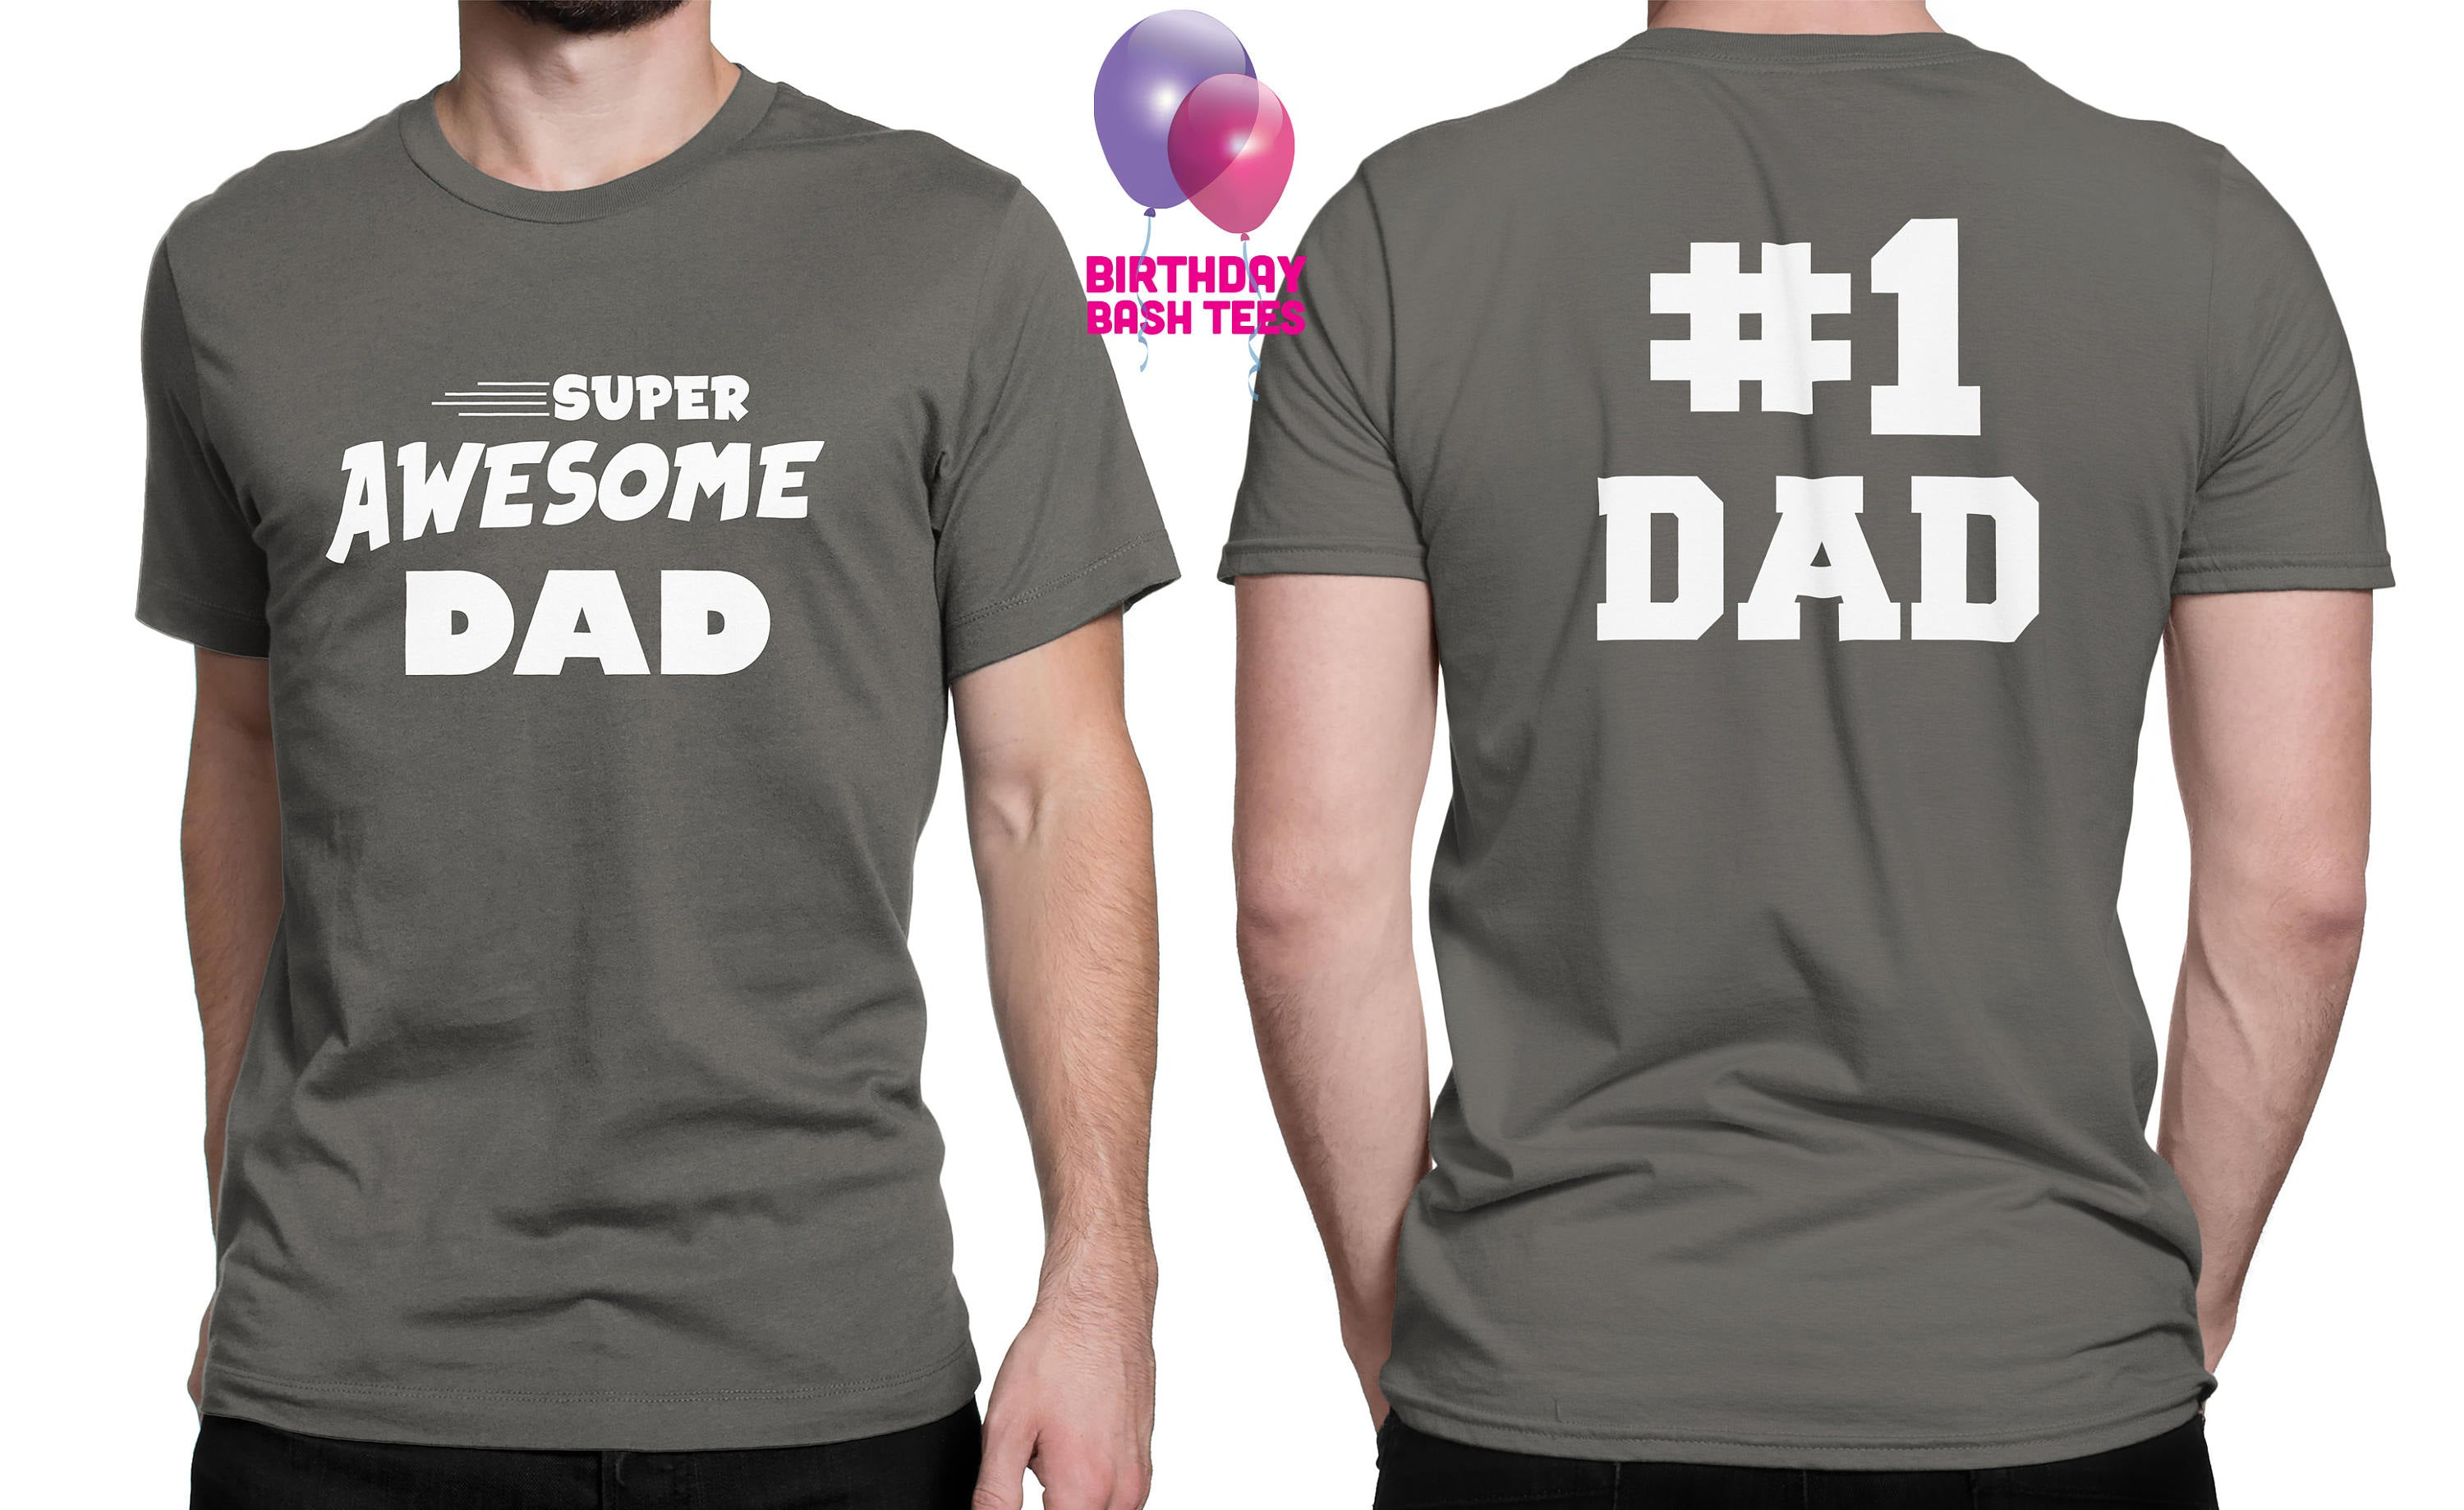 811276a2 Super Awesome Dad Father's Day Gift Shirt for Dad Number One Dad Dad is  Number 1 Awesome Dad gift Best Father Shirt Gift from Kids for Dad